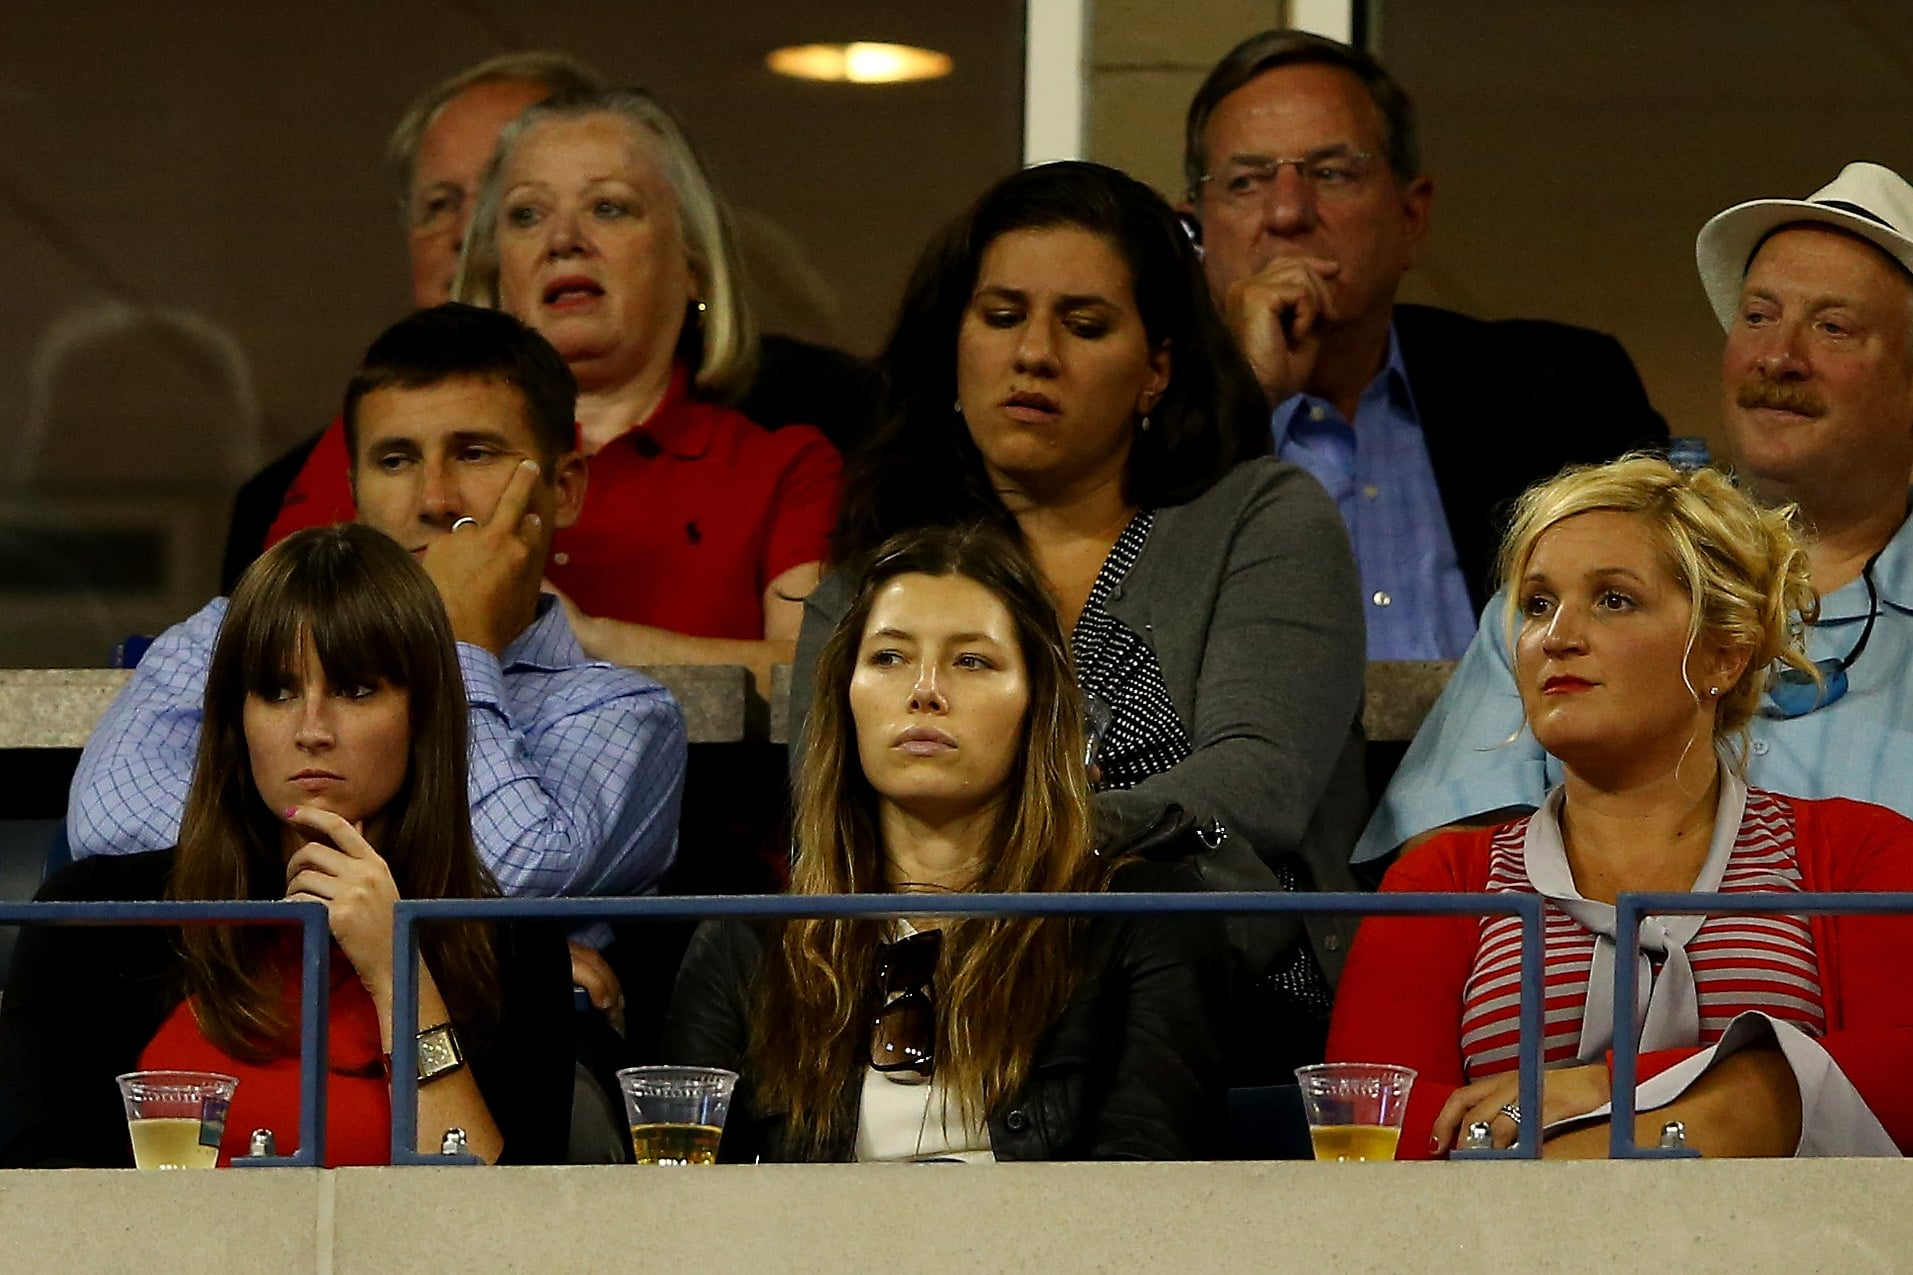 Jessica Biel took in the tennis action from a box with friends.